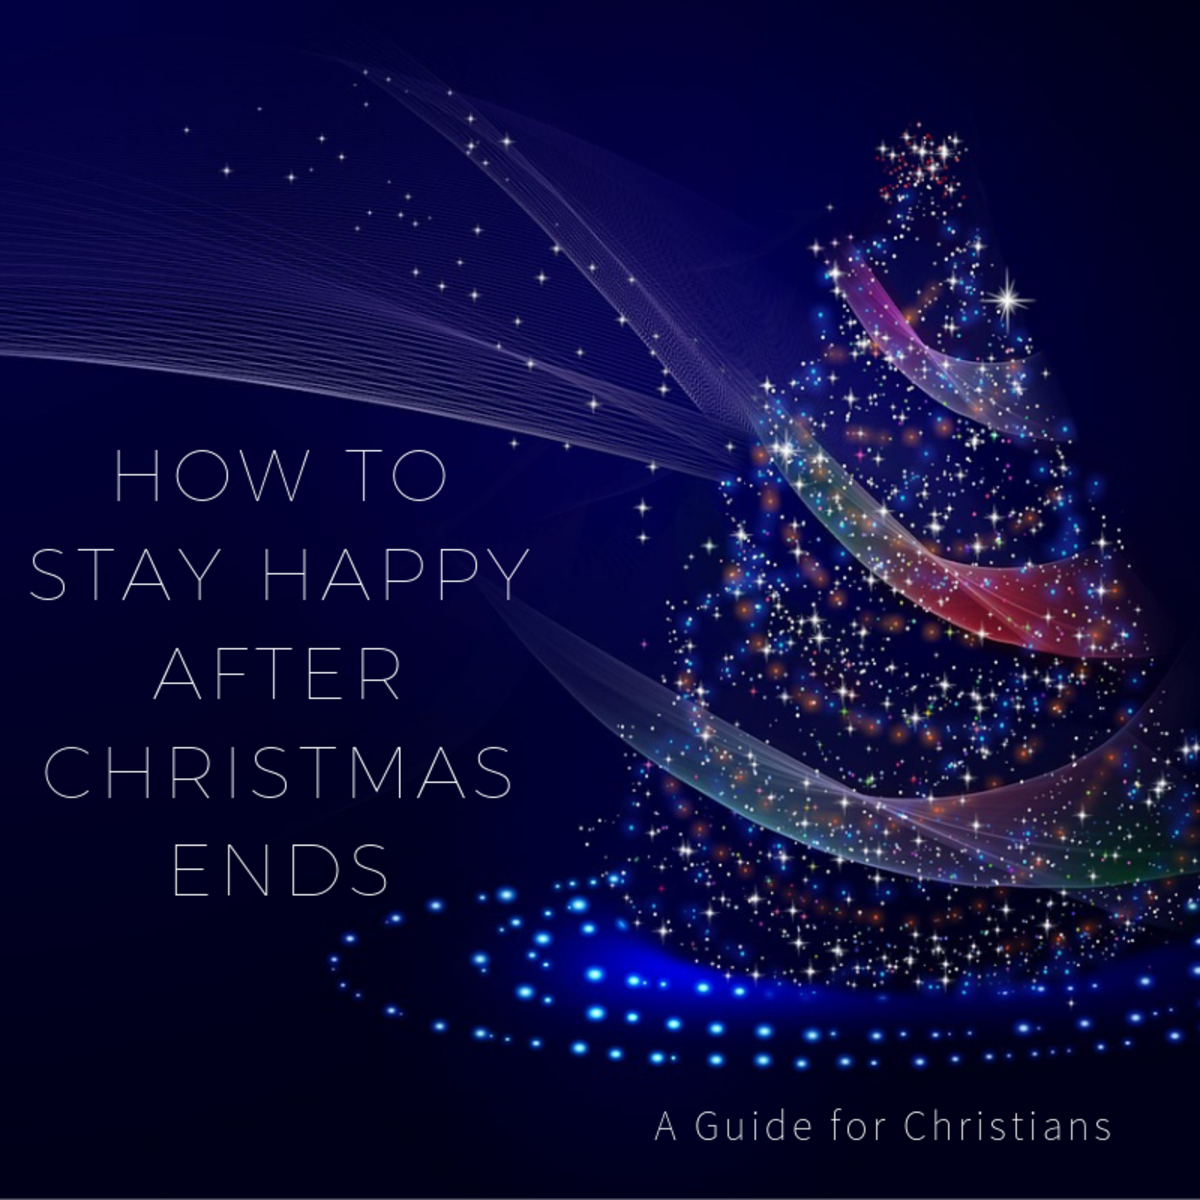 3 Christian Ways to Stay Happy After Christmas Celebrations Have Ended